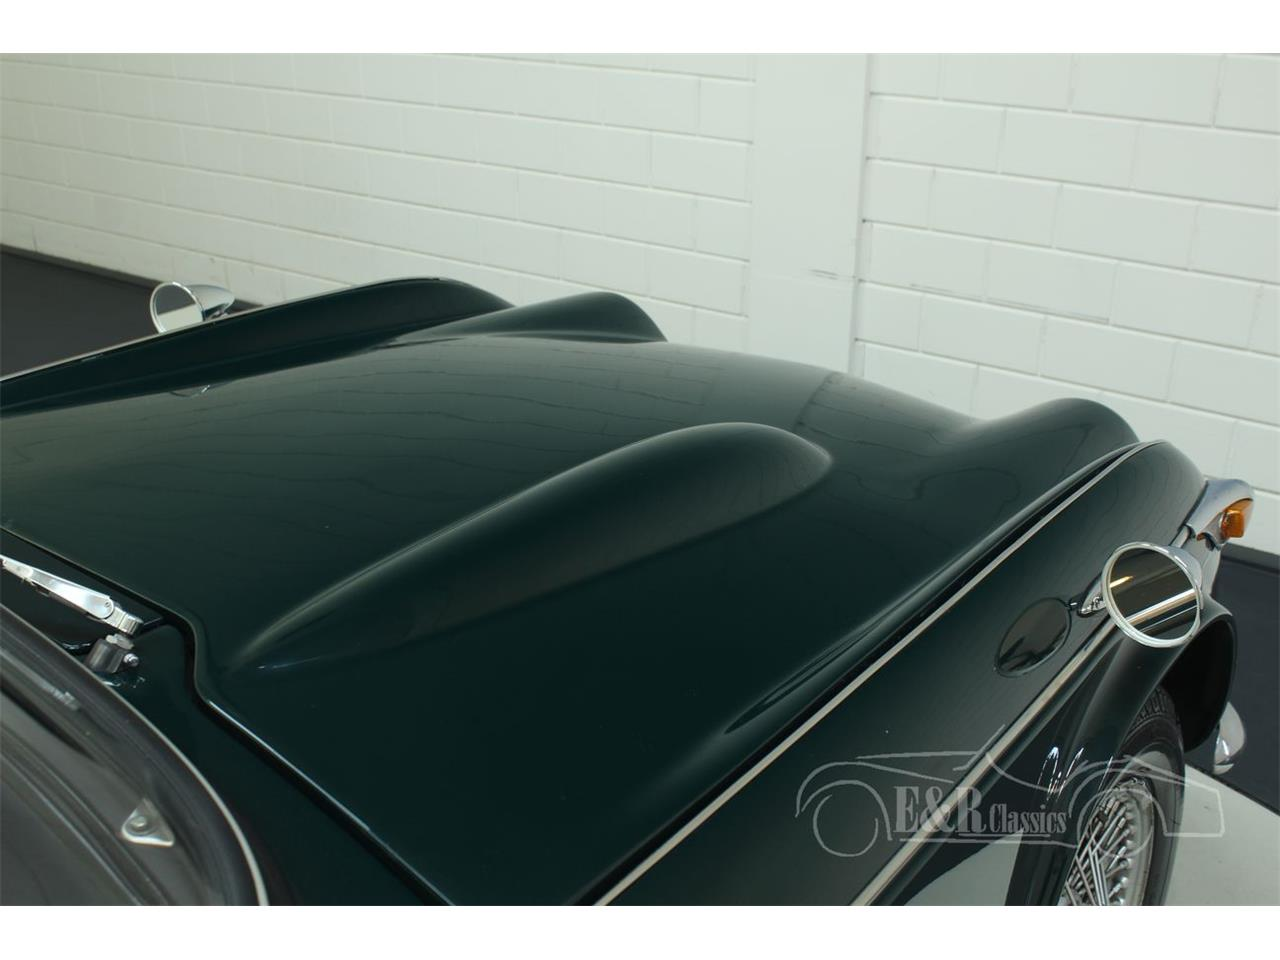 Large Picture of Classic 1967 Triumph TR4 located in Noord-Brabant Offered by E & R Classics - Q45O